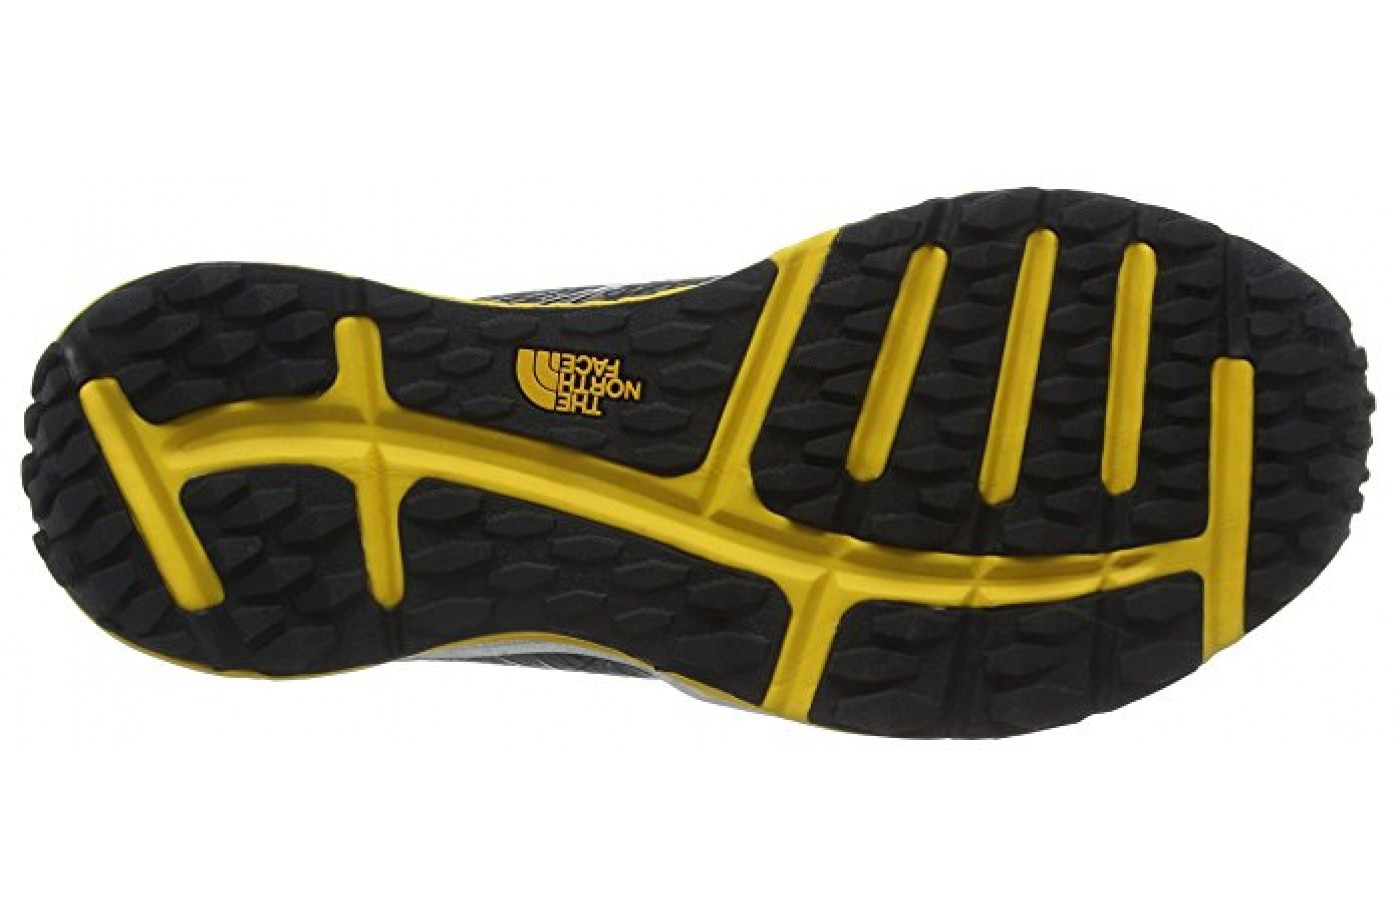 The North Face Litewave TR bottom sole